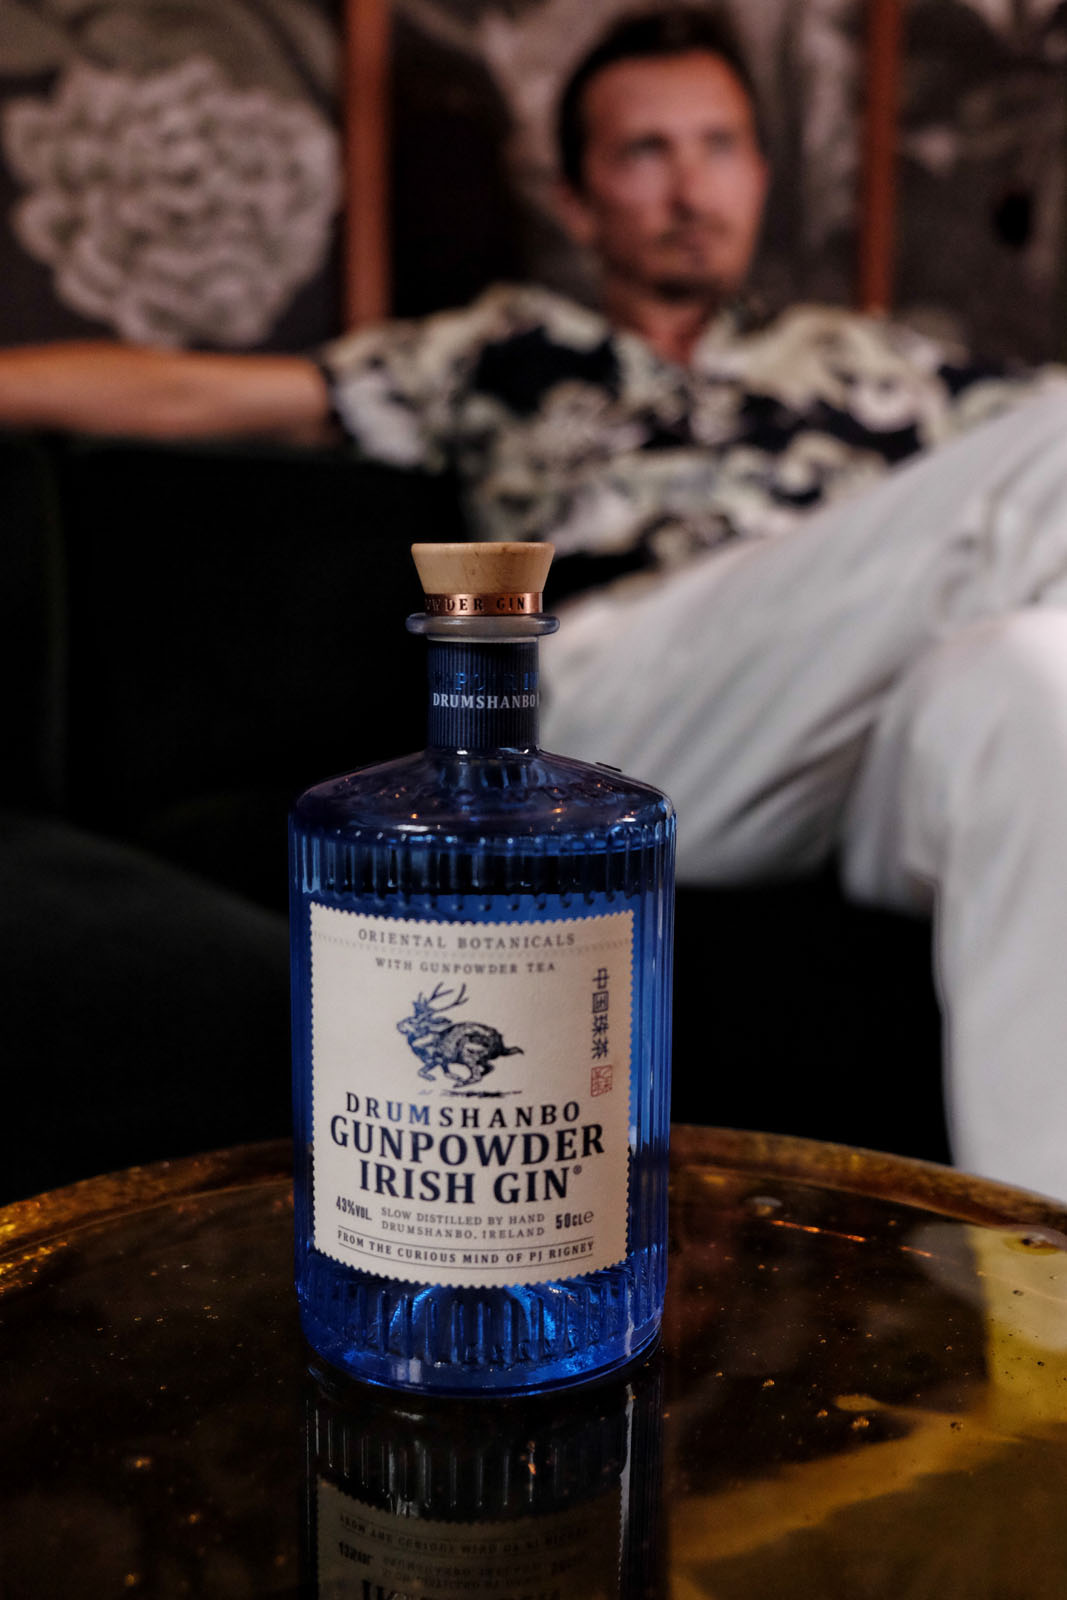 Drumshanbo Gunpowder Irish gin mood